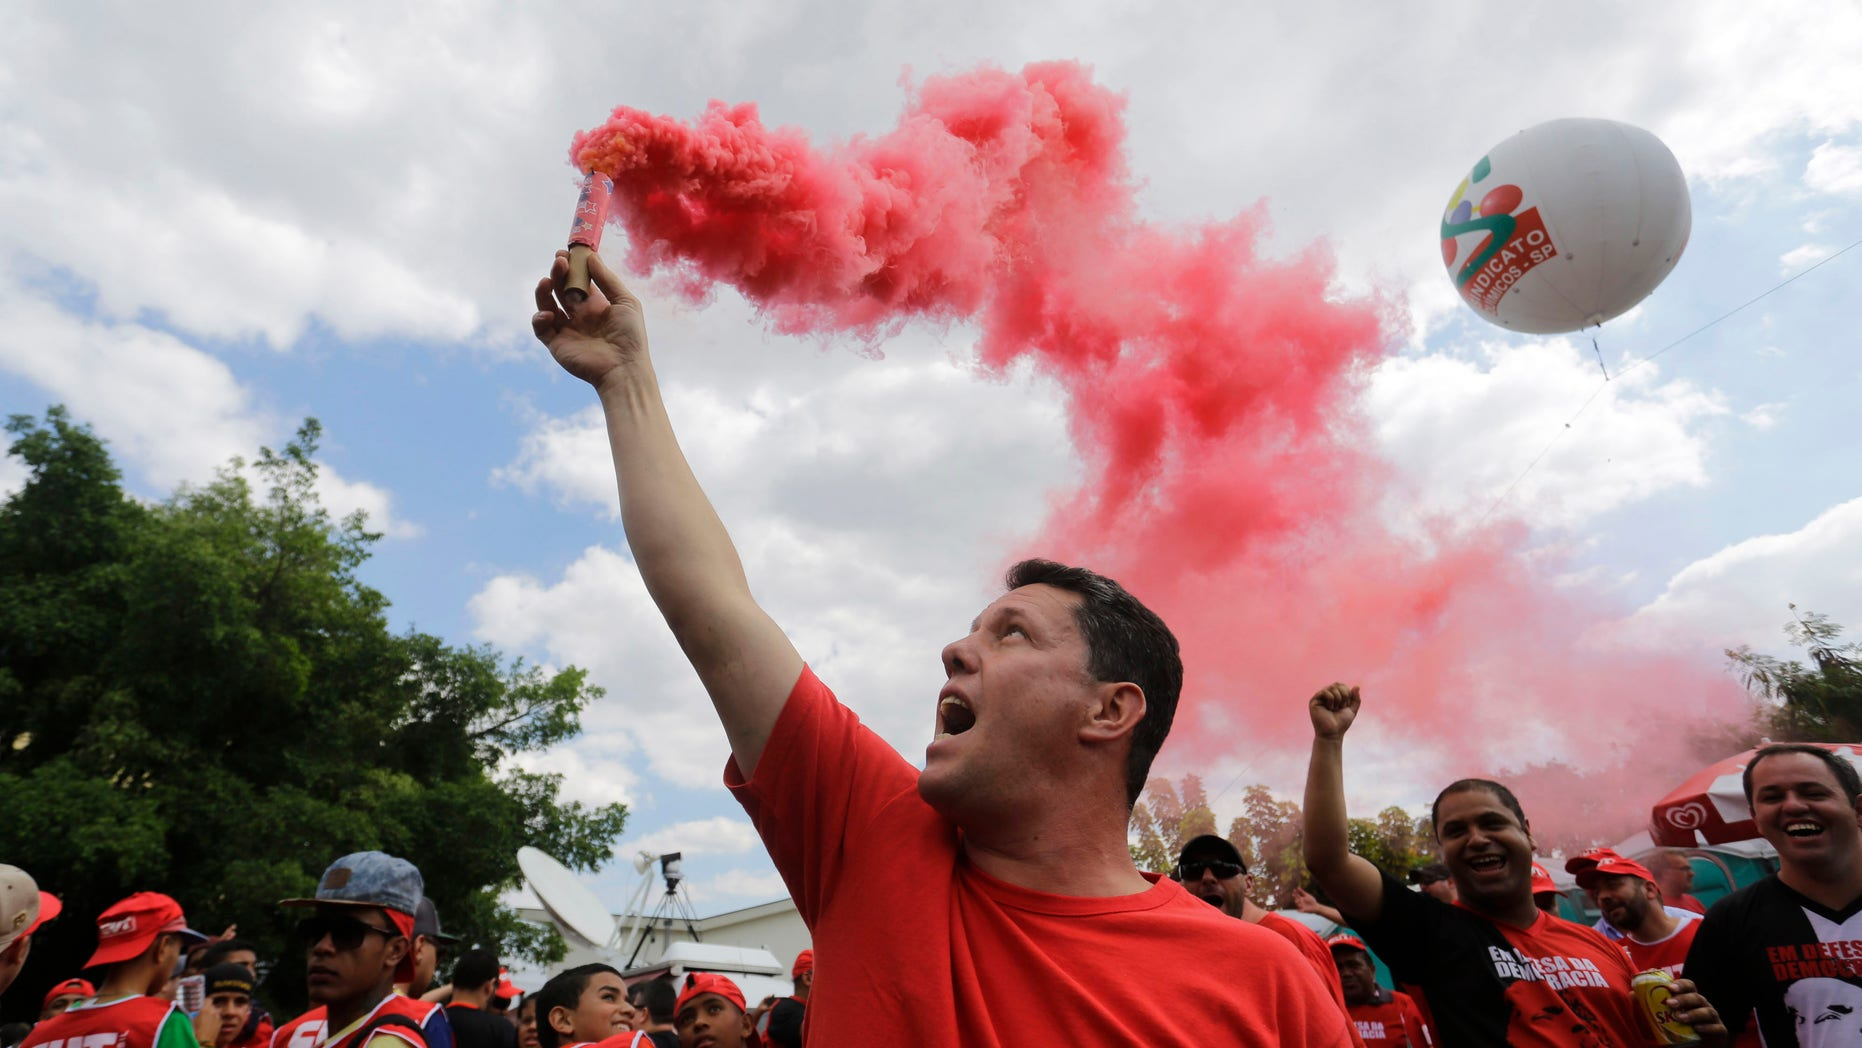 Demonstrators march in support of Brazilian President Dilma Rousseff and of the Worker's Party in front of Lula Institute, of former president Luiz Inacio Lula da Silva, in Sao Paulo, Brazil, Sunday, Aug. 16, 2015. The march in support of Rousseff came as other demonstrators are taking to the streets of cities and towns across Brazil for a day of nationwide anti-government protests. President Rousseff's second term in office has been shaken by a snowballing corruption scandal involving politicians from her Workersâ Party, as well as a spluttering economy, spiraling currency and rising inflation. (AP Photo/Nelson Antoine)